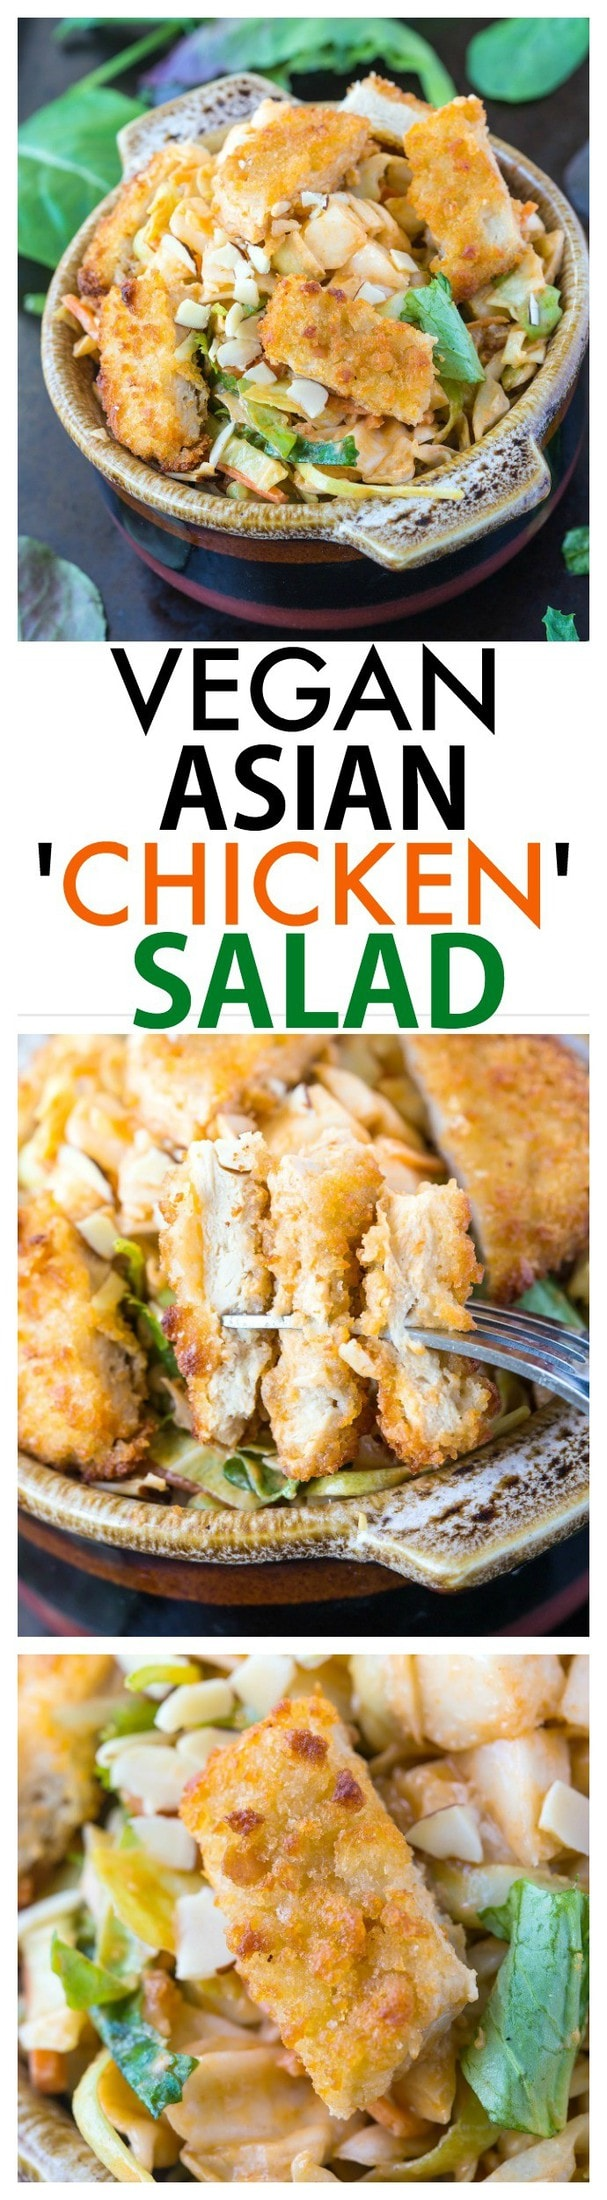 Vegan Asian 'Chicken' Salad- Quick, easy and delicious, this 'chicken' salad will sway even the biggest carnivore- The dressing is AMAZING! {vegan, gluten free}